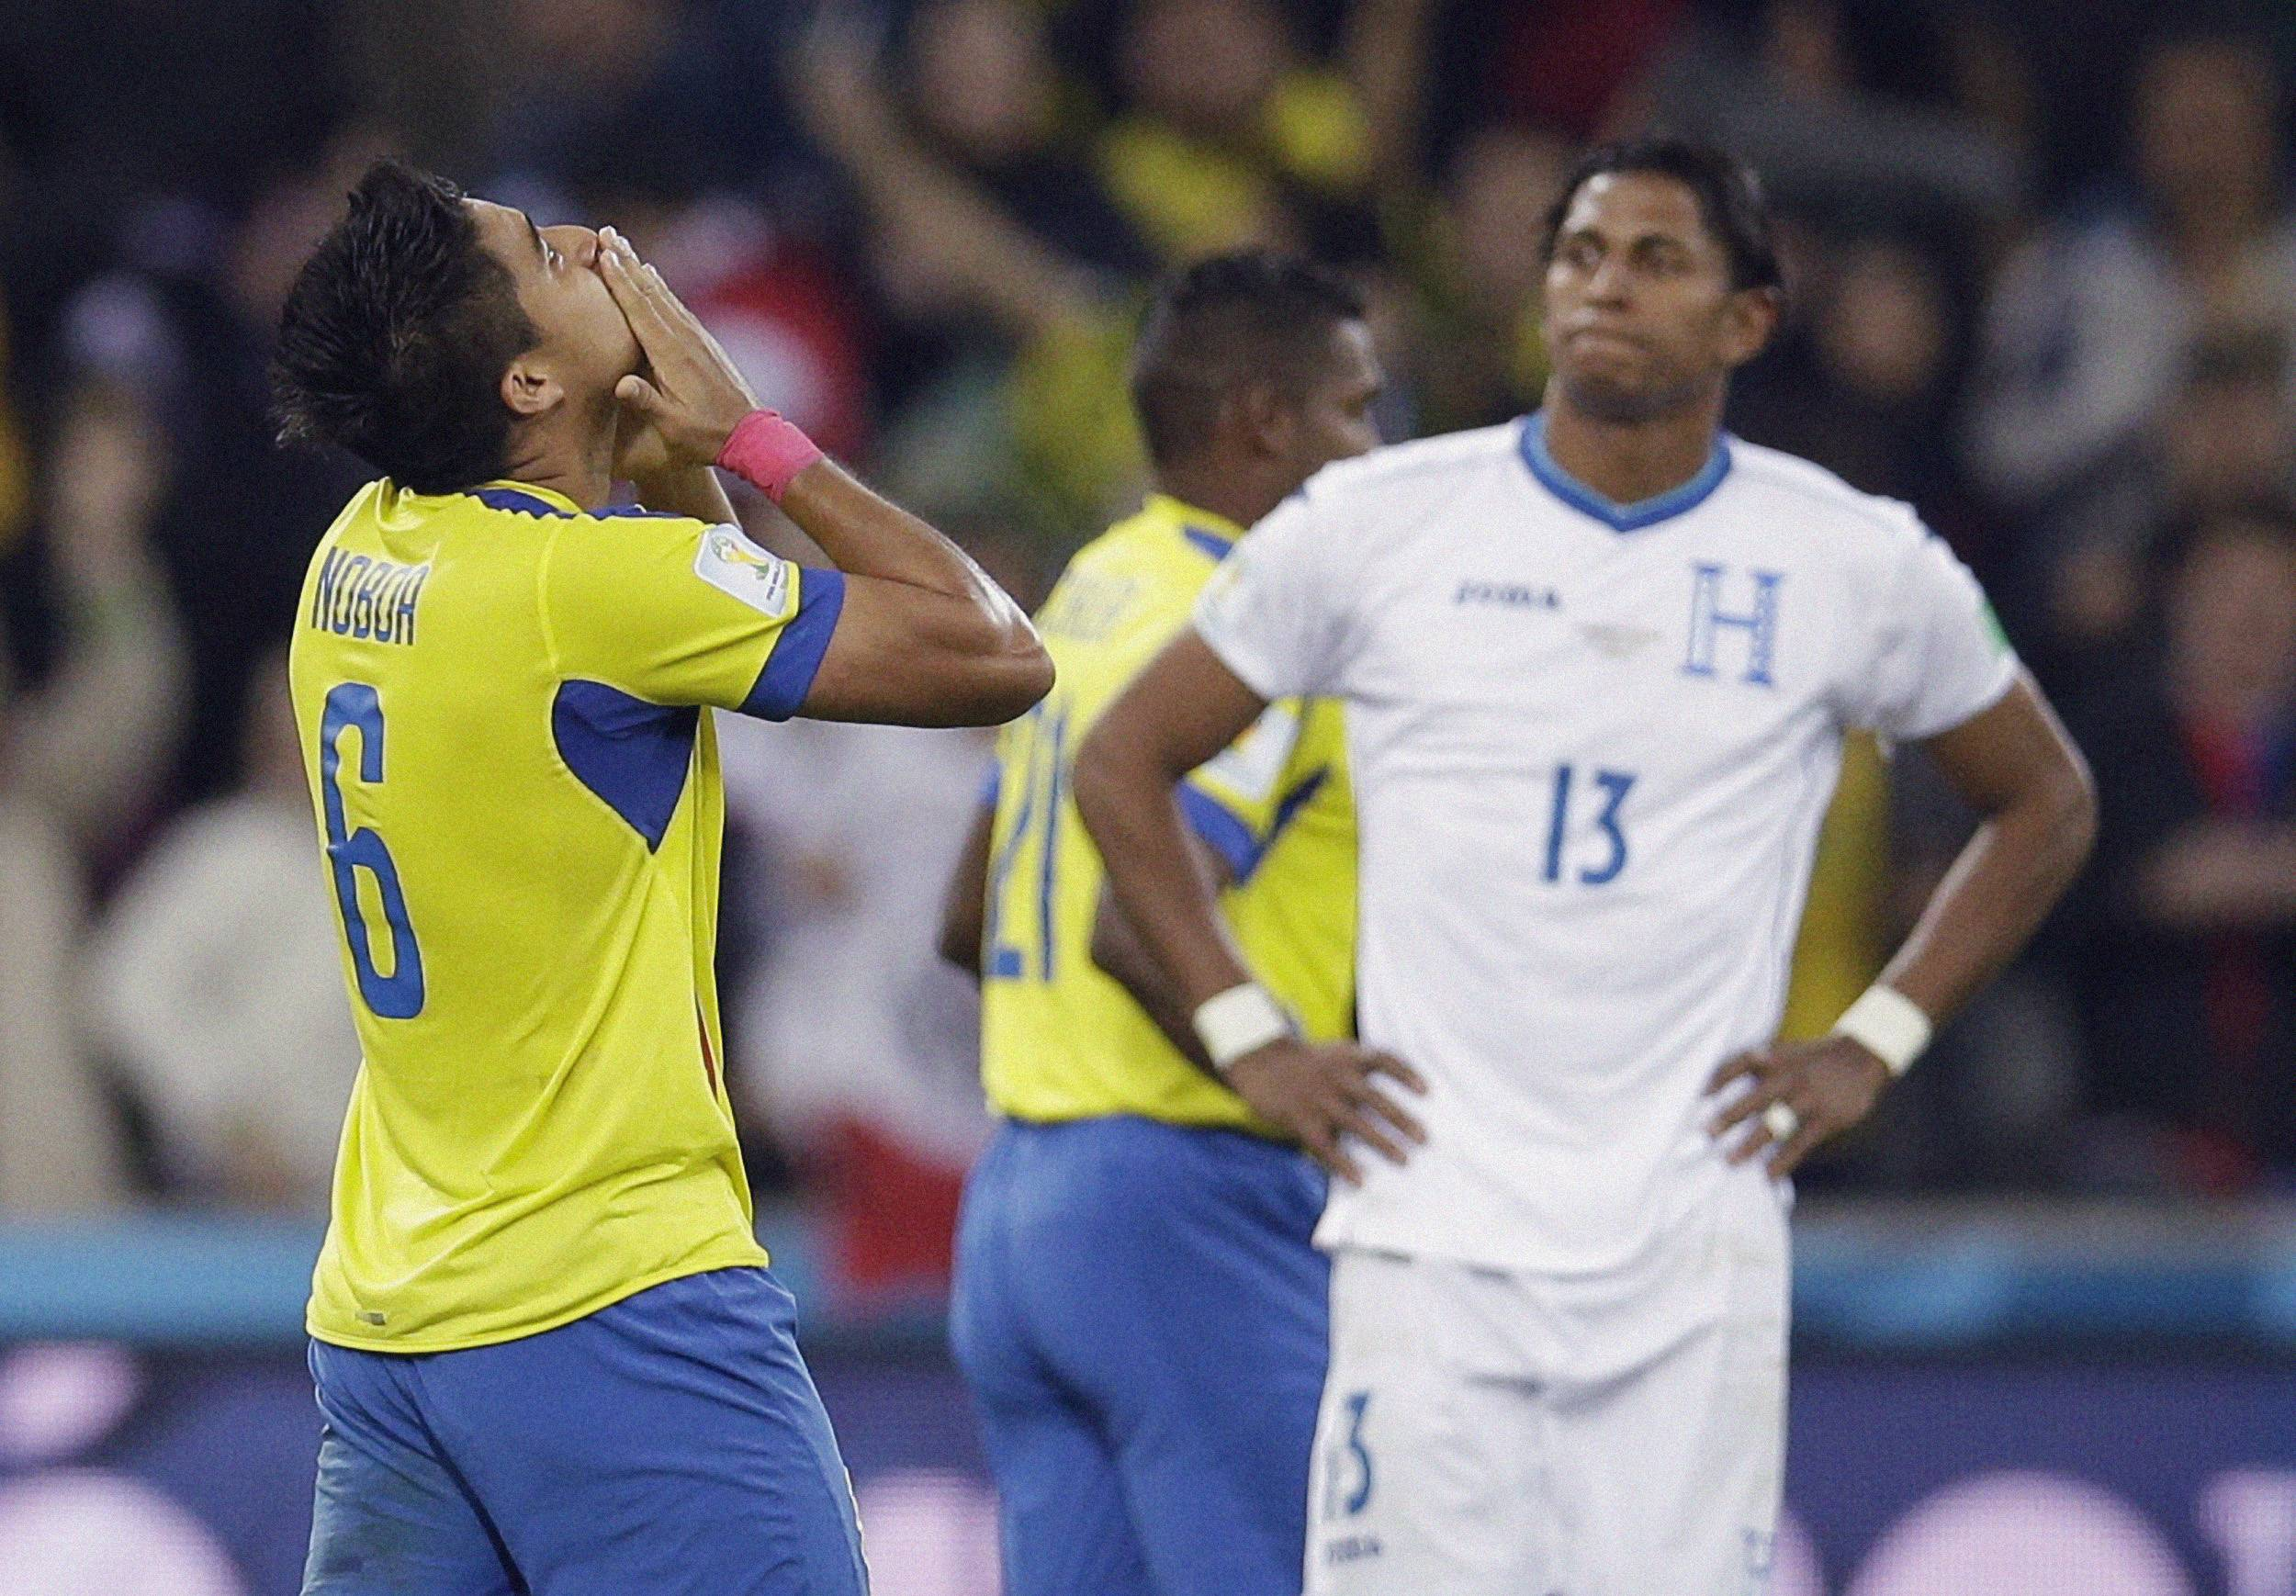 Ecuador's Cristhian Noboa celebrates at the final whistle as Honduras' Carlo Costly looks on after the group E World Cup soccer match at the Arena da Baixada in Curitiba, Brazil, Friday. Ecuador won the match 2-1.